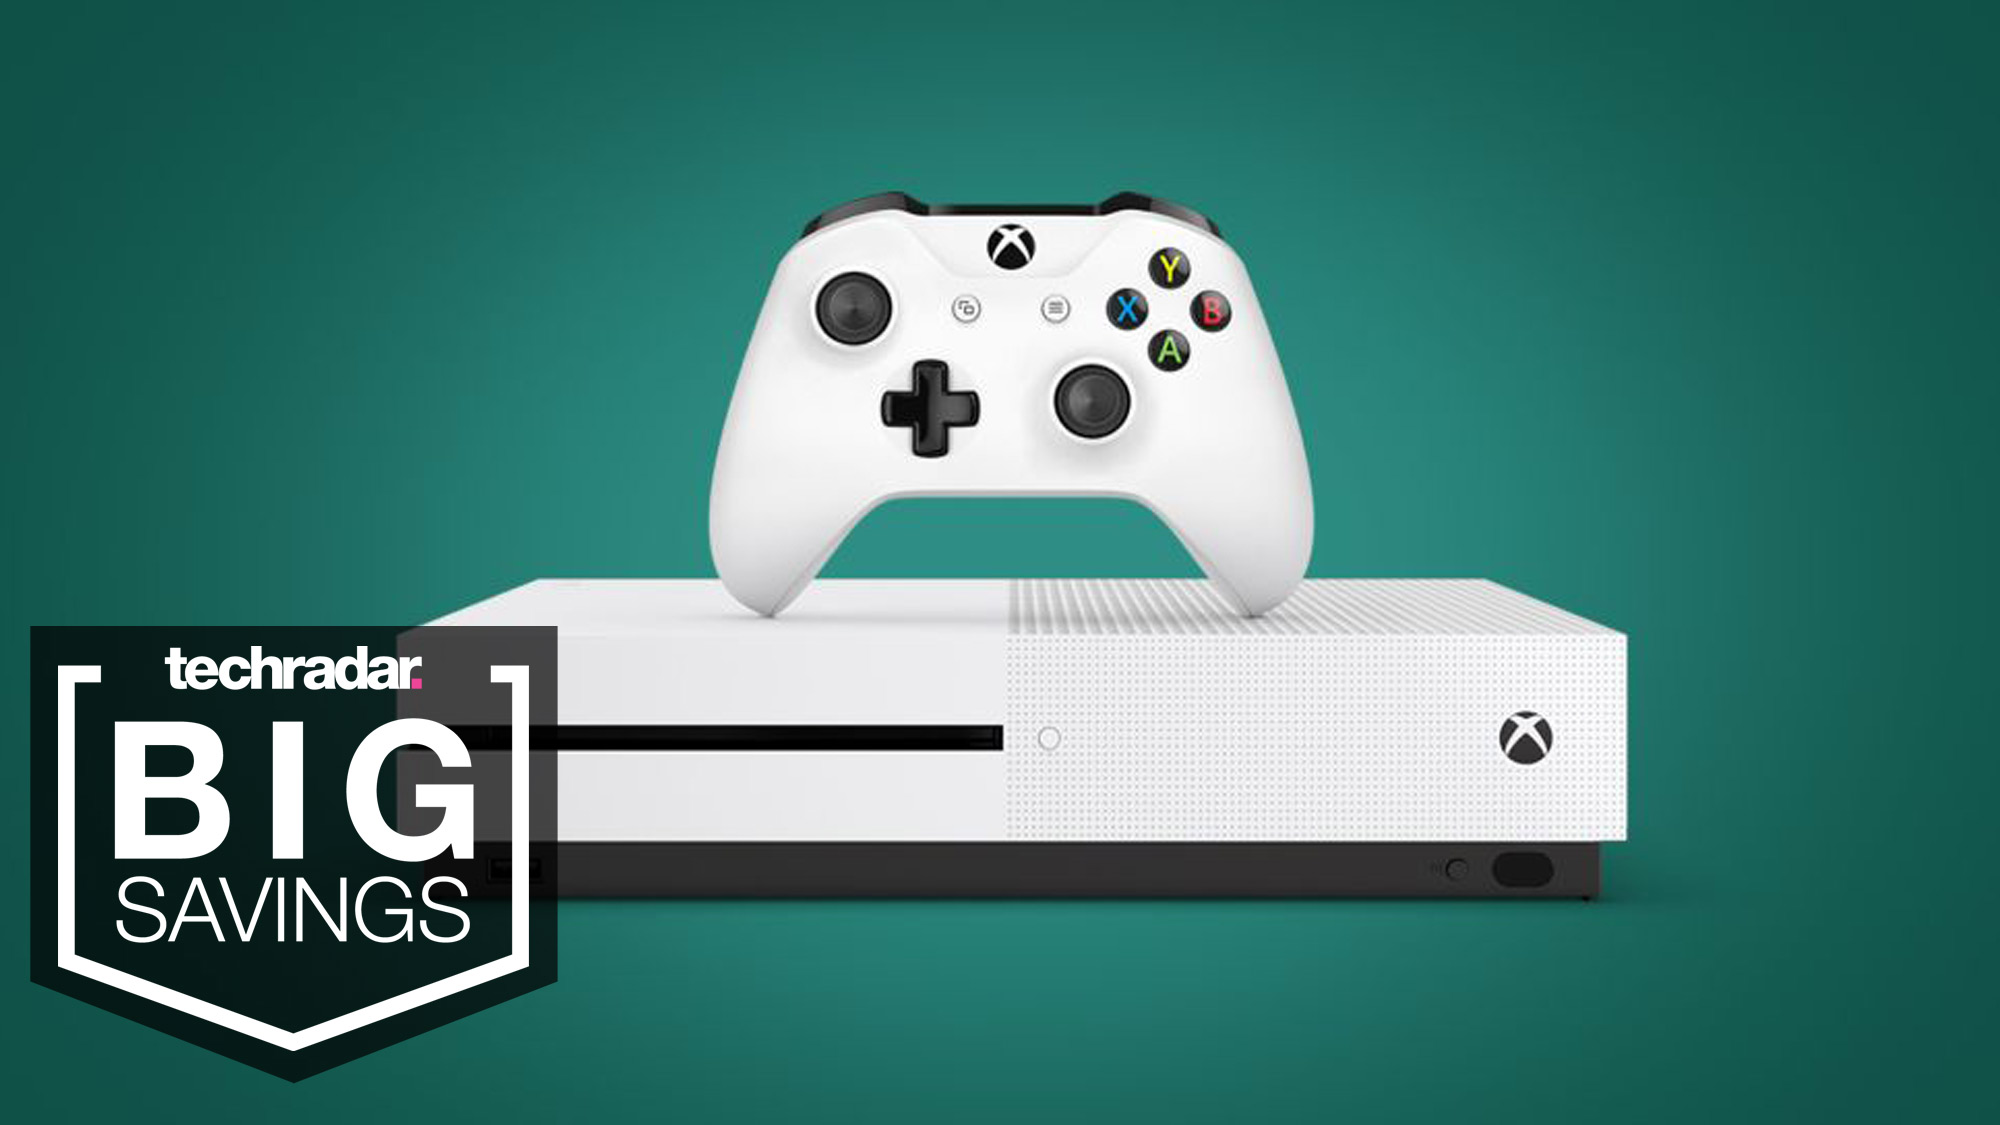 The Best Black Friday Xbox One S Deal Is At Lidl Power Leveling Web